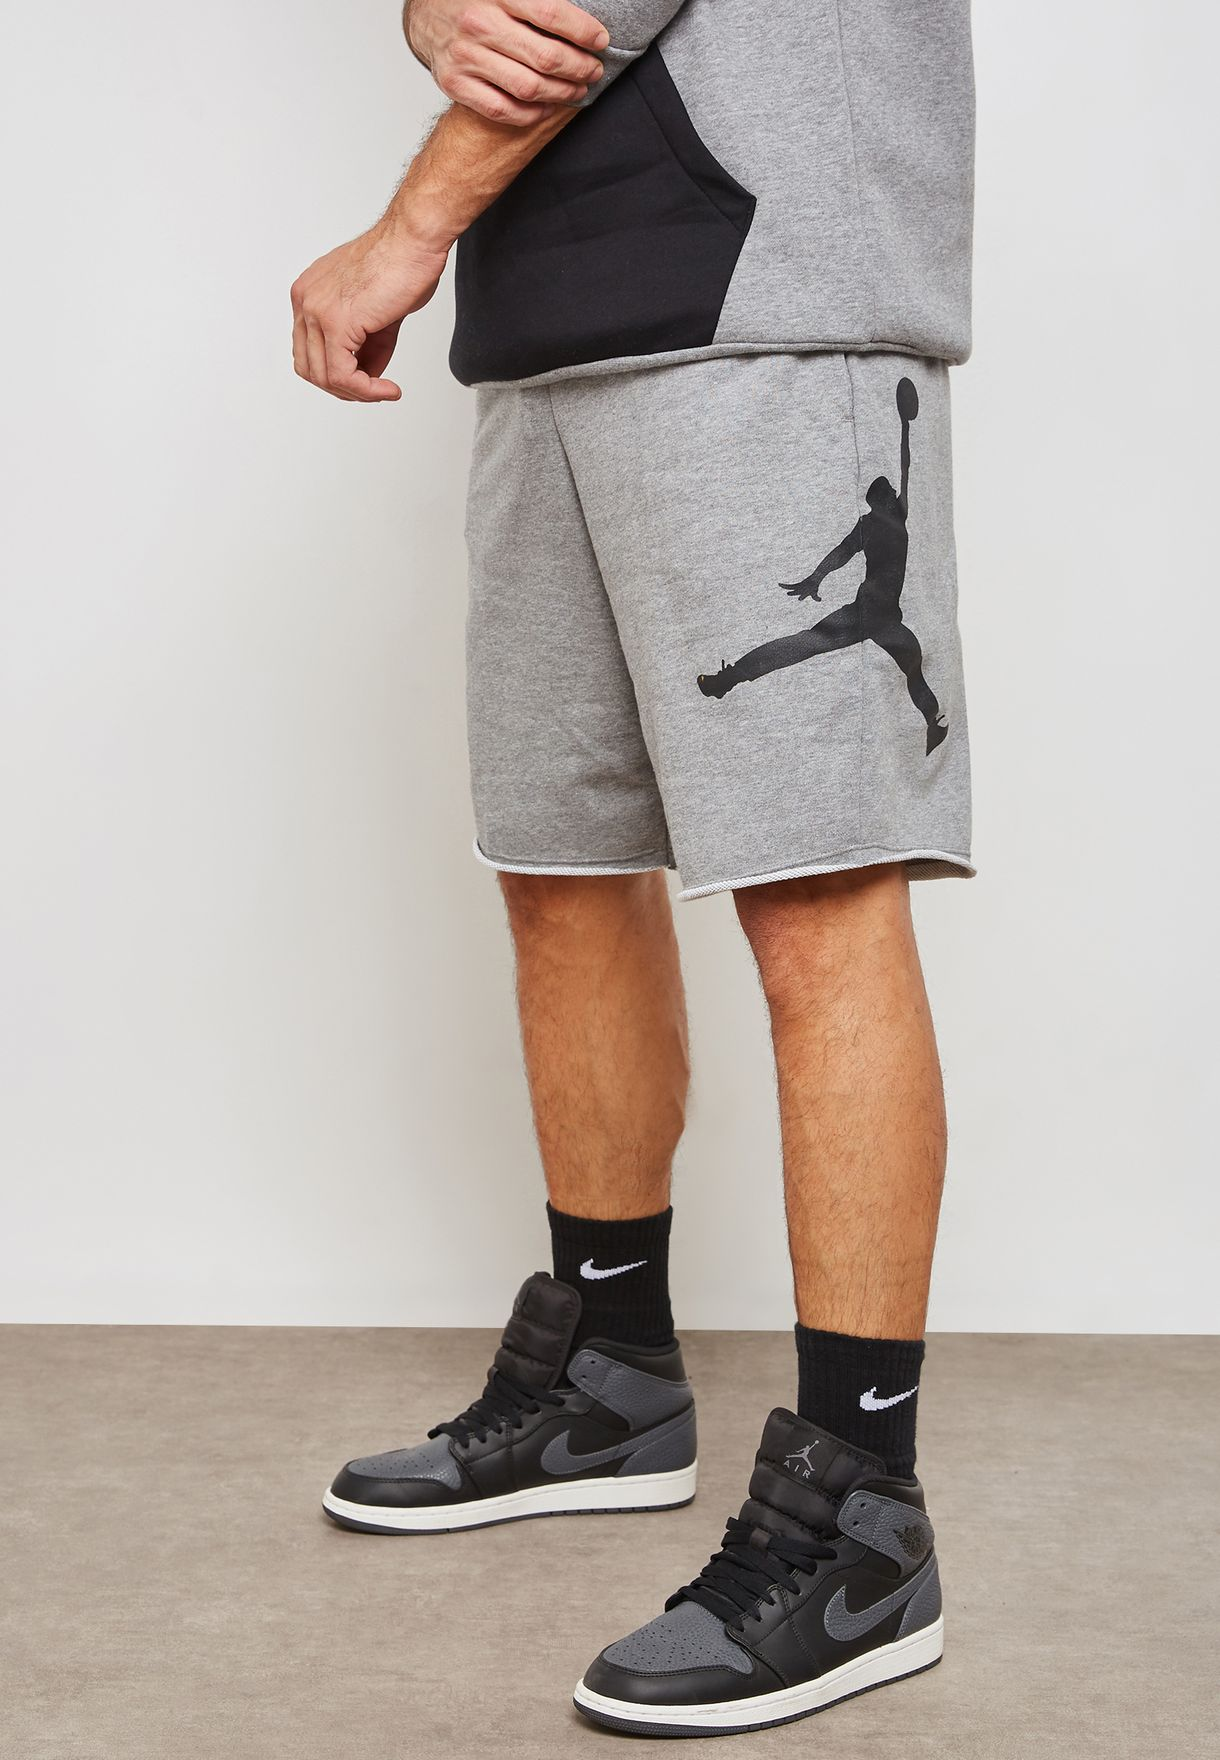 c2706a43e34 Shop Nike grey Jordan Jumpman Air Shorts AQ3115-091 for Men in UAE -  NI727AT71AHW